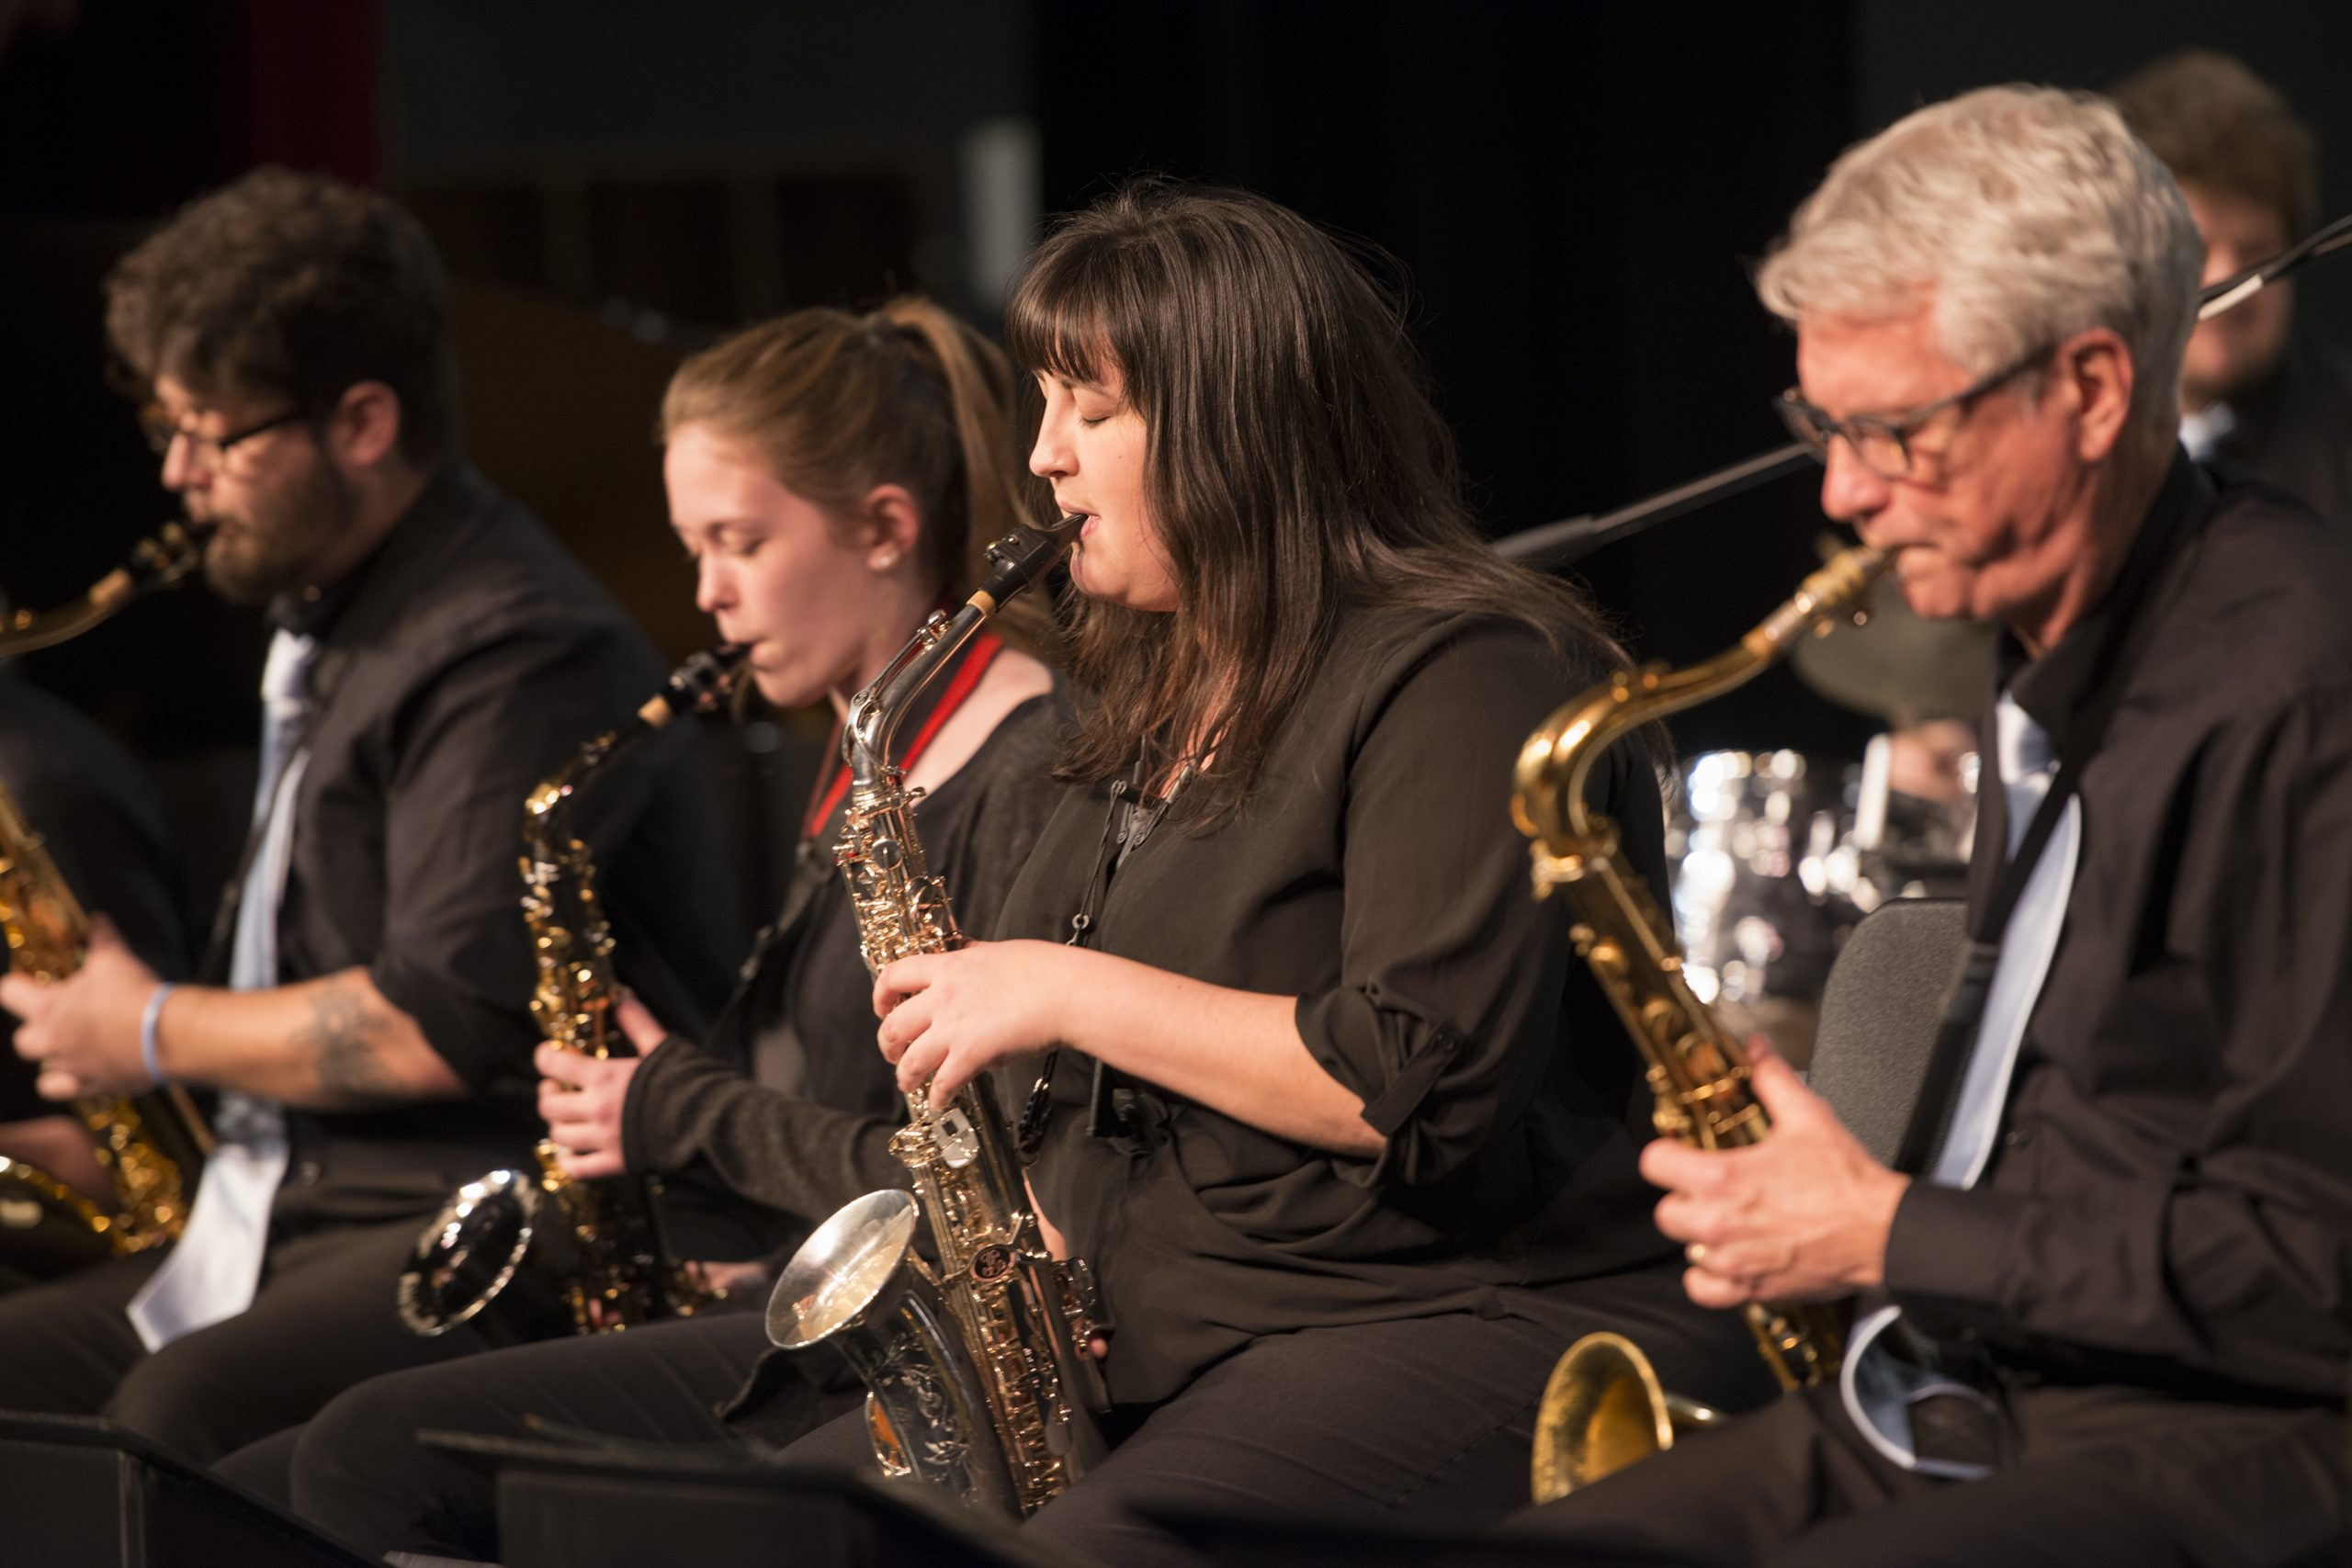 Shawna Lechner, alto saxophonist, performing during the 2019 JazzFest.